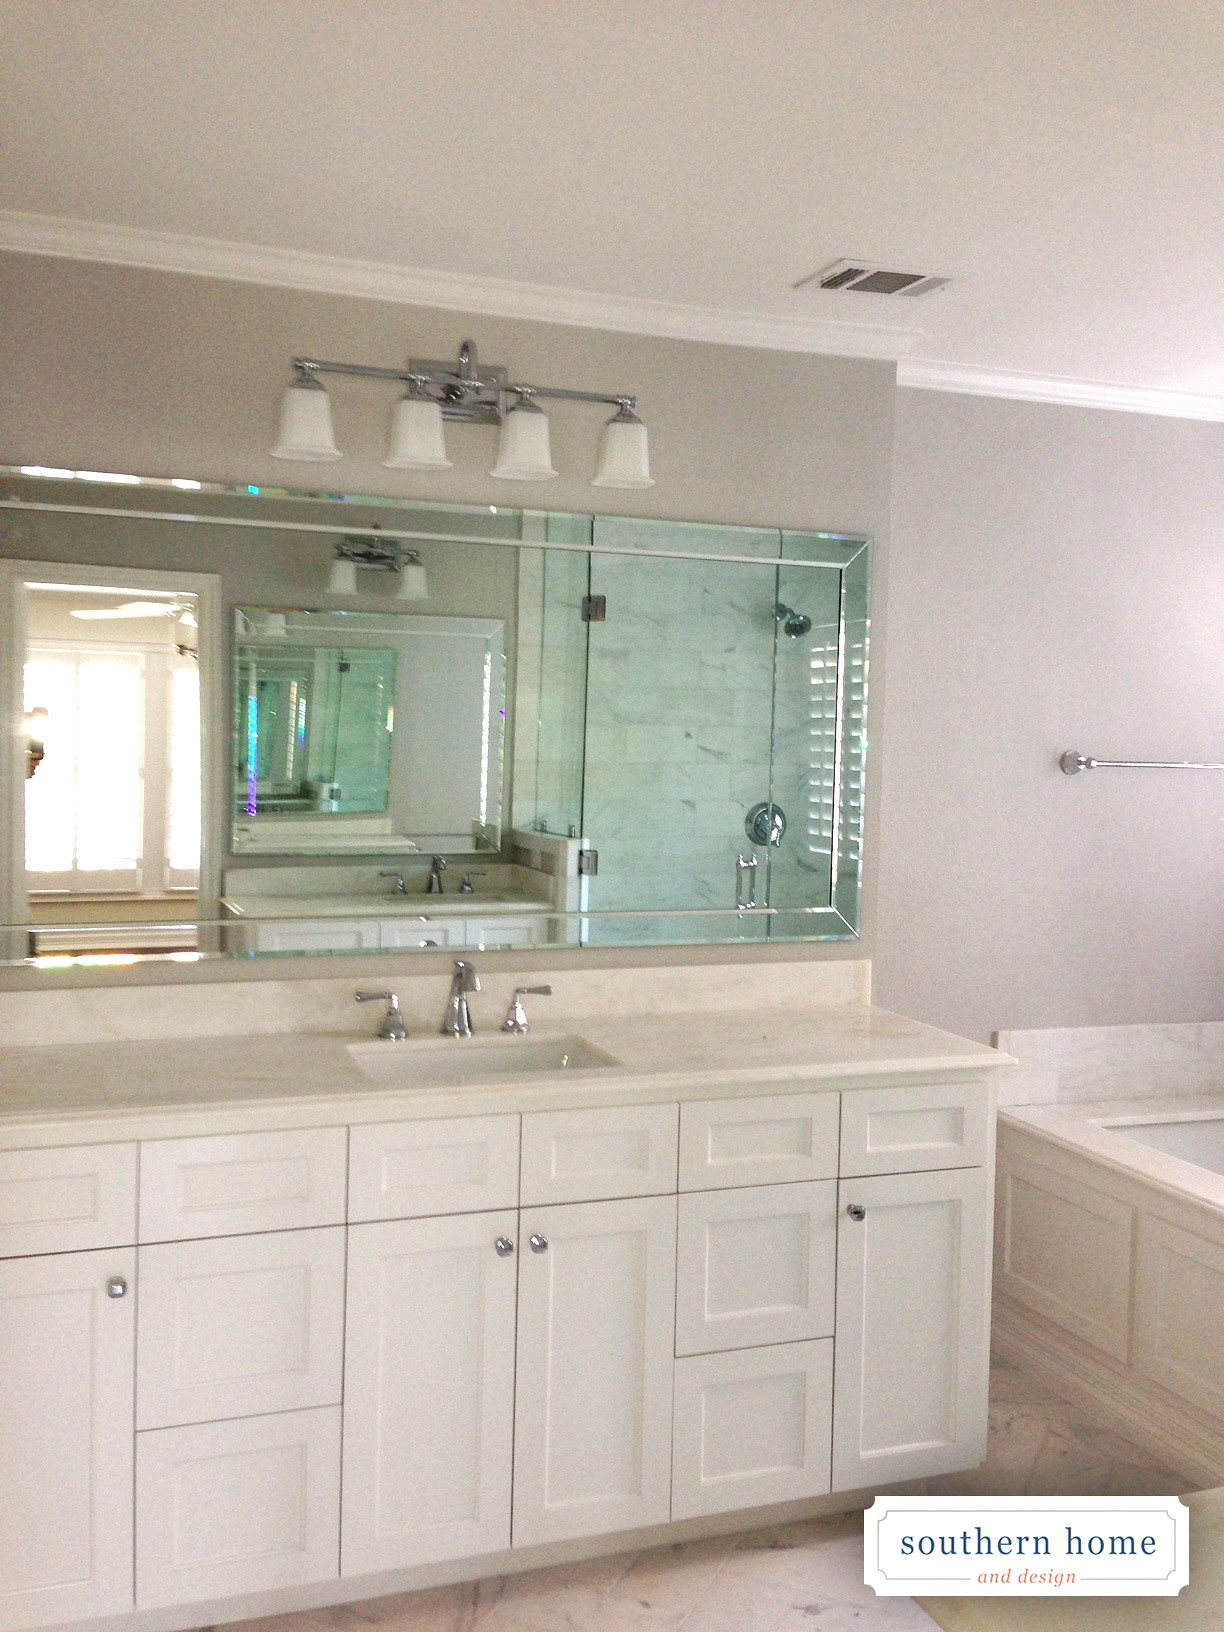 Custom bathroom in Dallas. White shaker cabinets, beveled glass mirror, and chrome accents.